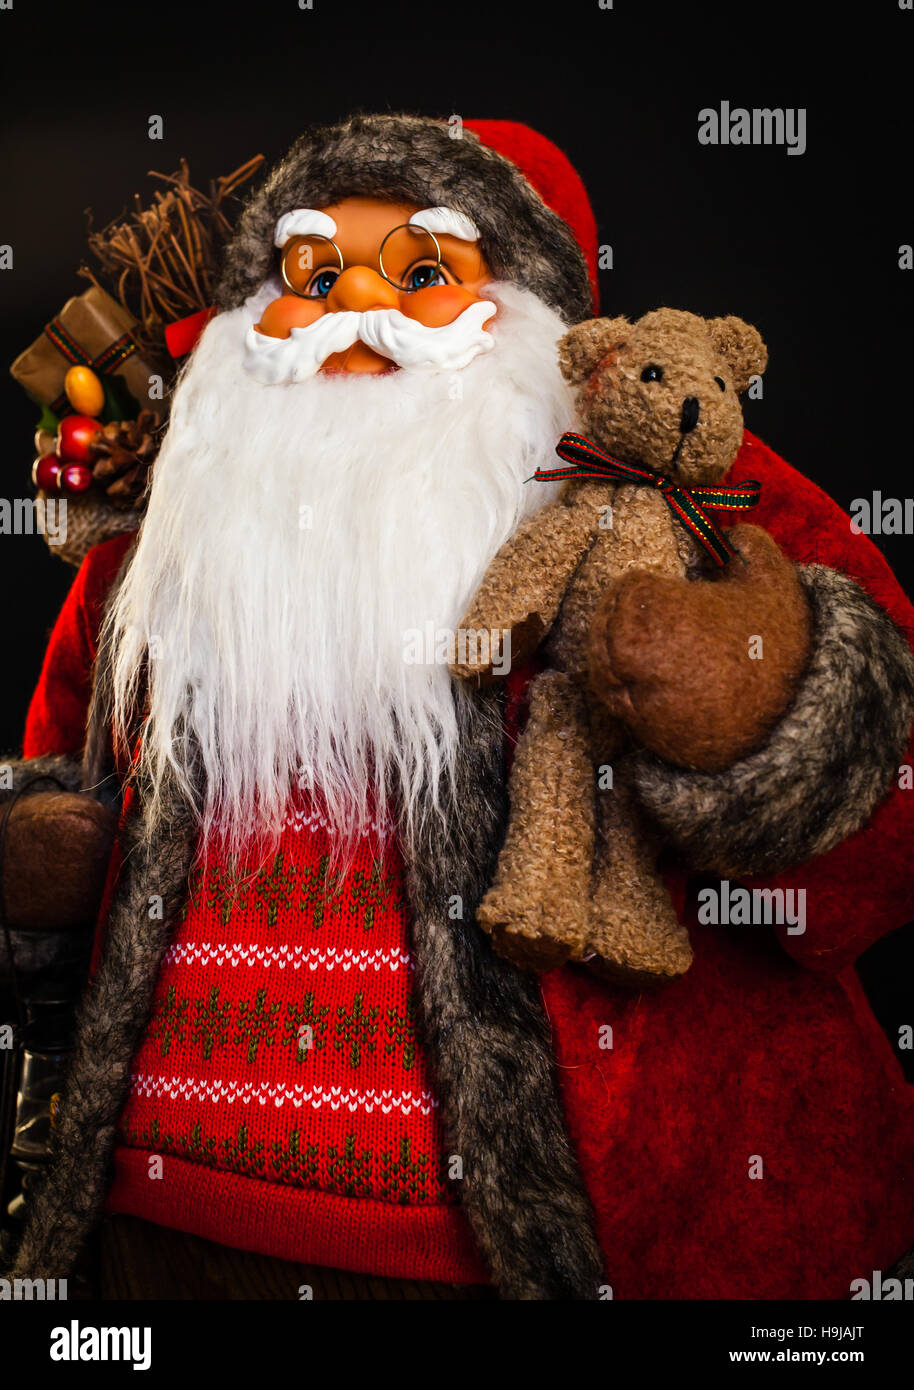 Santa Claus upper body close up with black background. - Stock Image